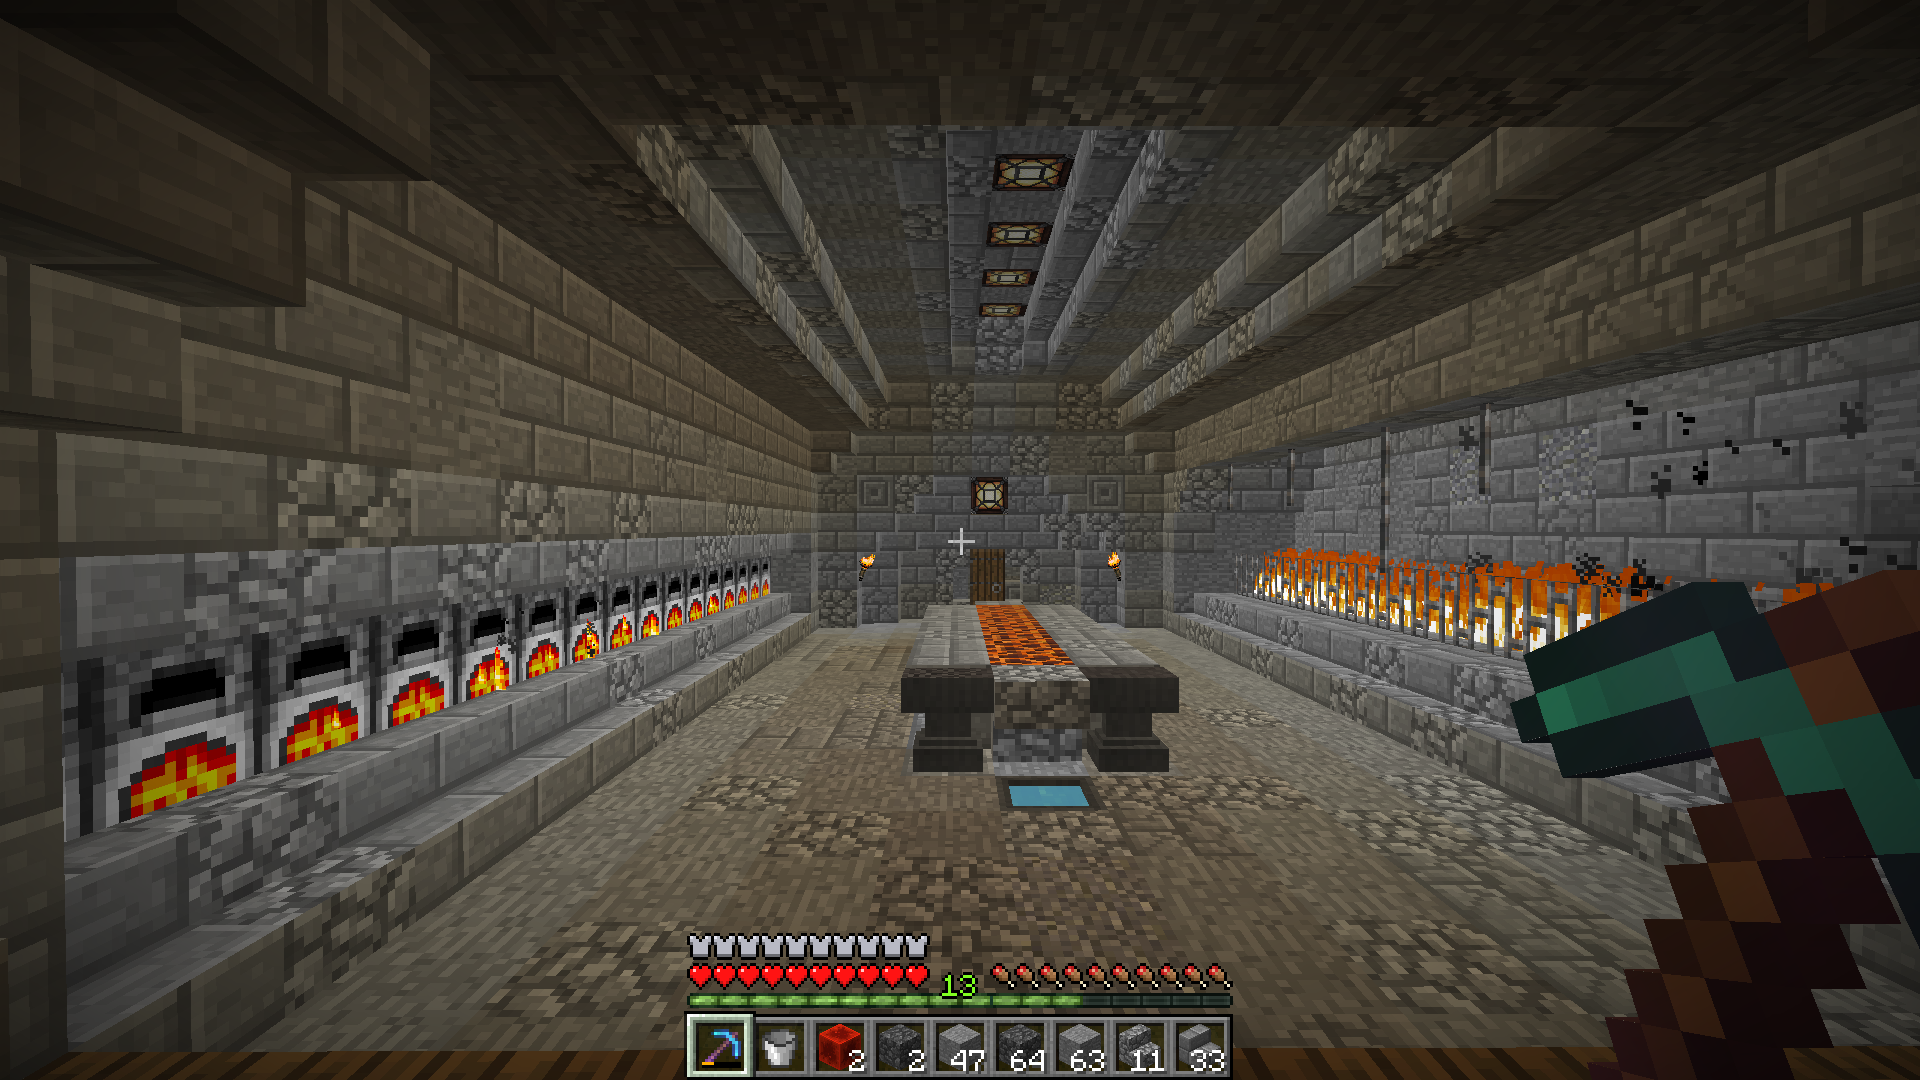 What do you think about my furnace room and suggestion to make it